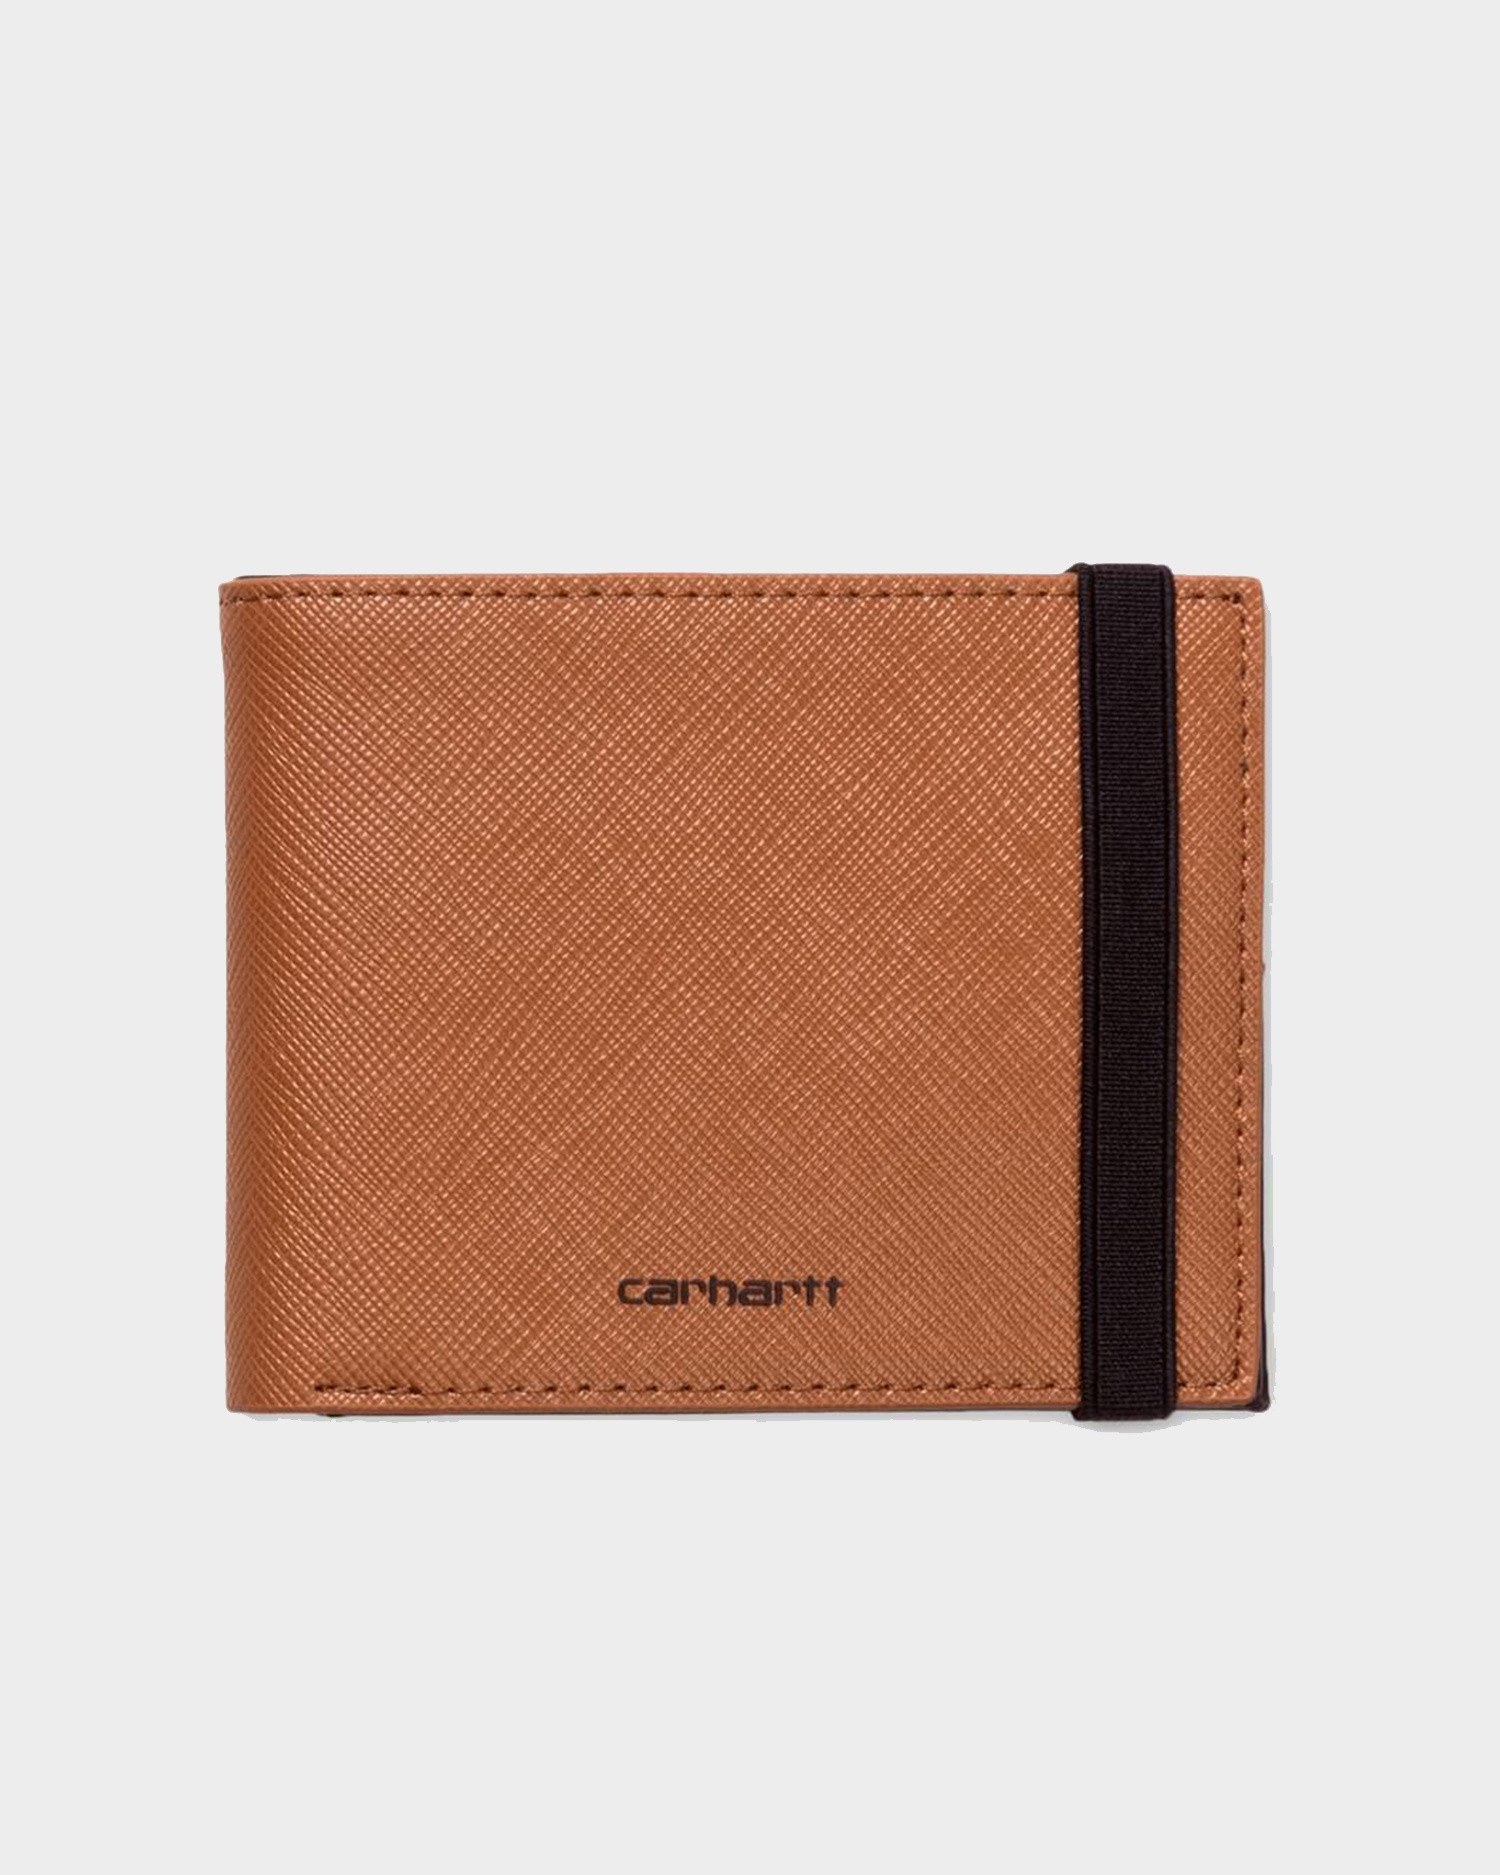 Carhartt Coated Wallet Hamilton Brown/Black